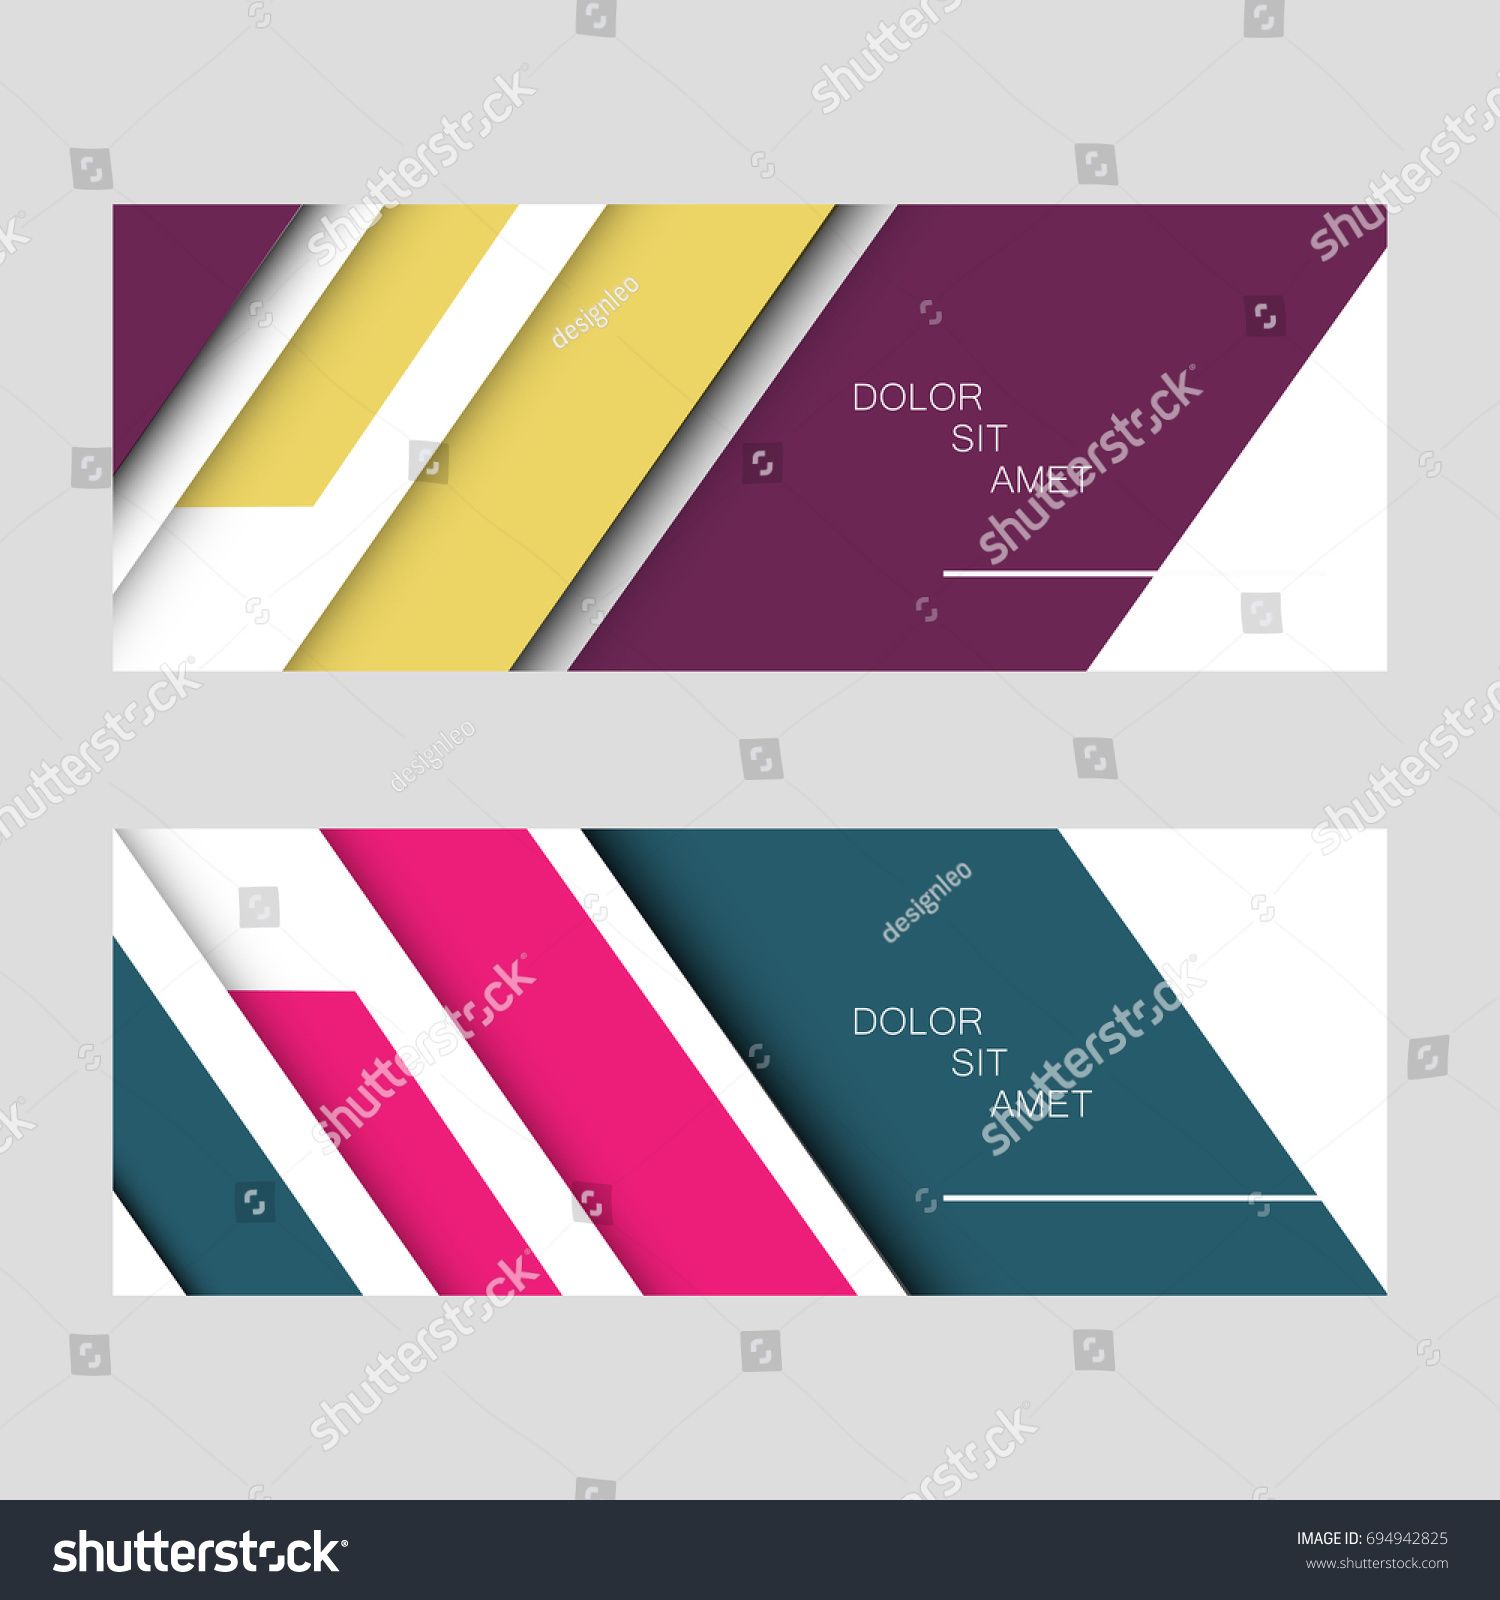 Design vector banner - Two Abstract Vector Banner Design With Modern Color Line Style